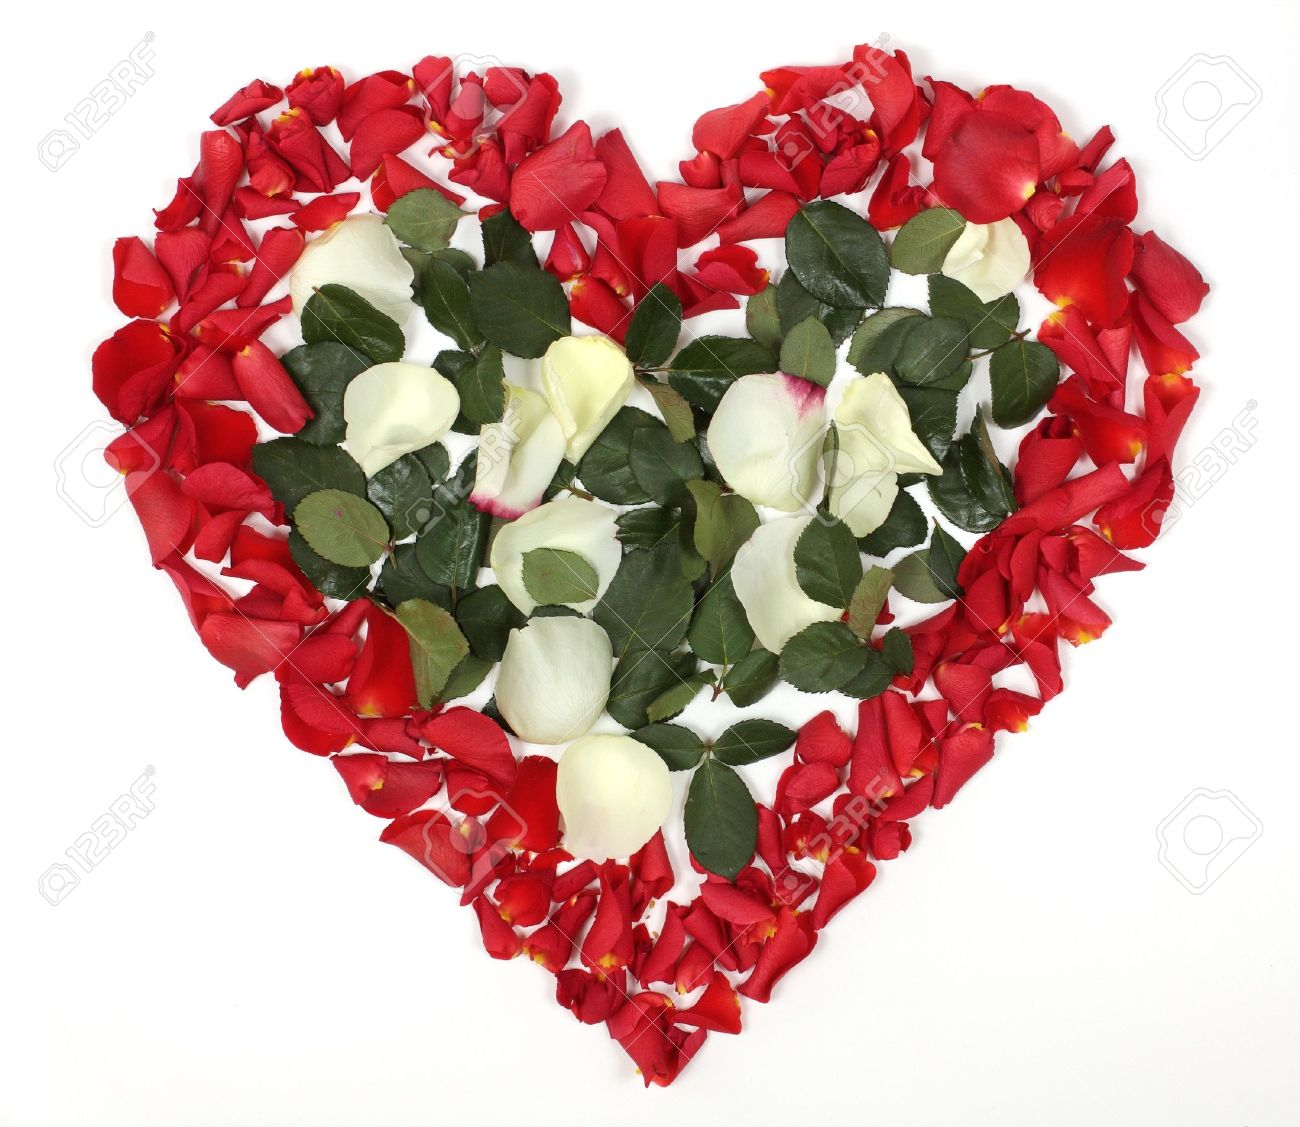 Bouquet De Rose En Forme De Coeur #6: Heart Shaped Bouquet Of Red And White Roses On White Background Stock Photo  - 13138122